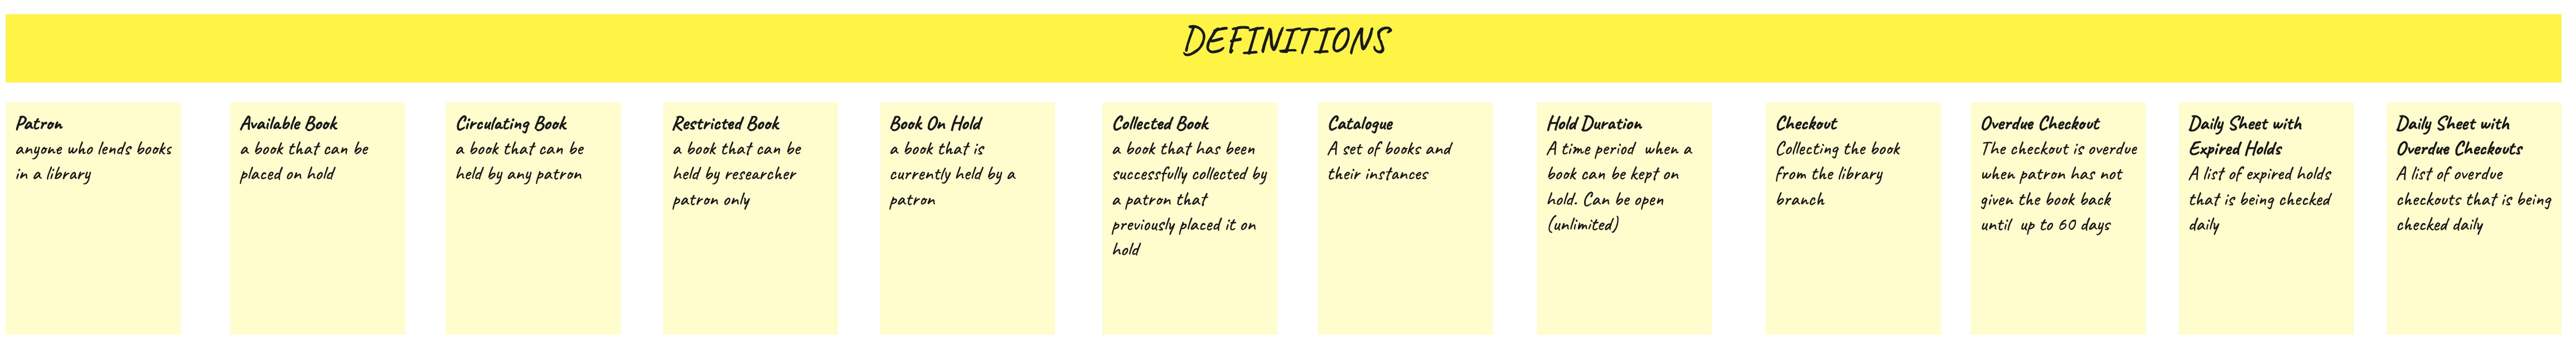 Event Storming Definitions